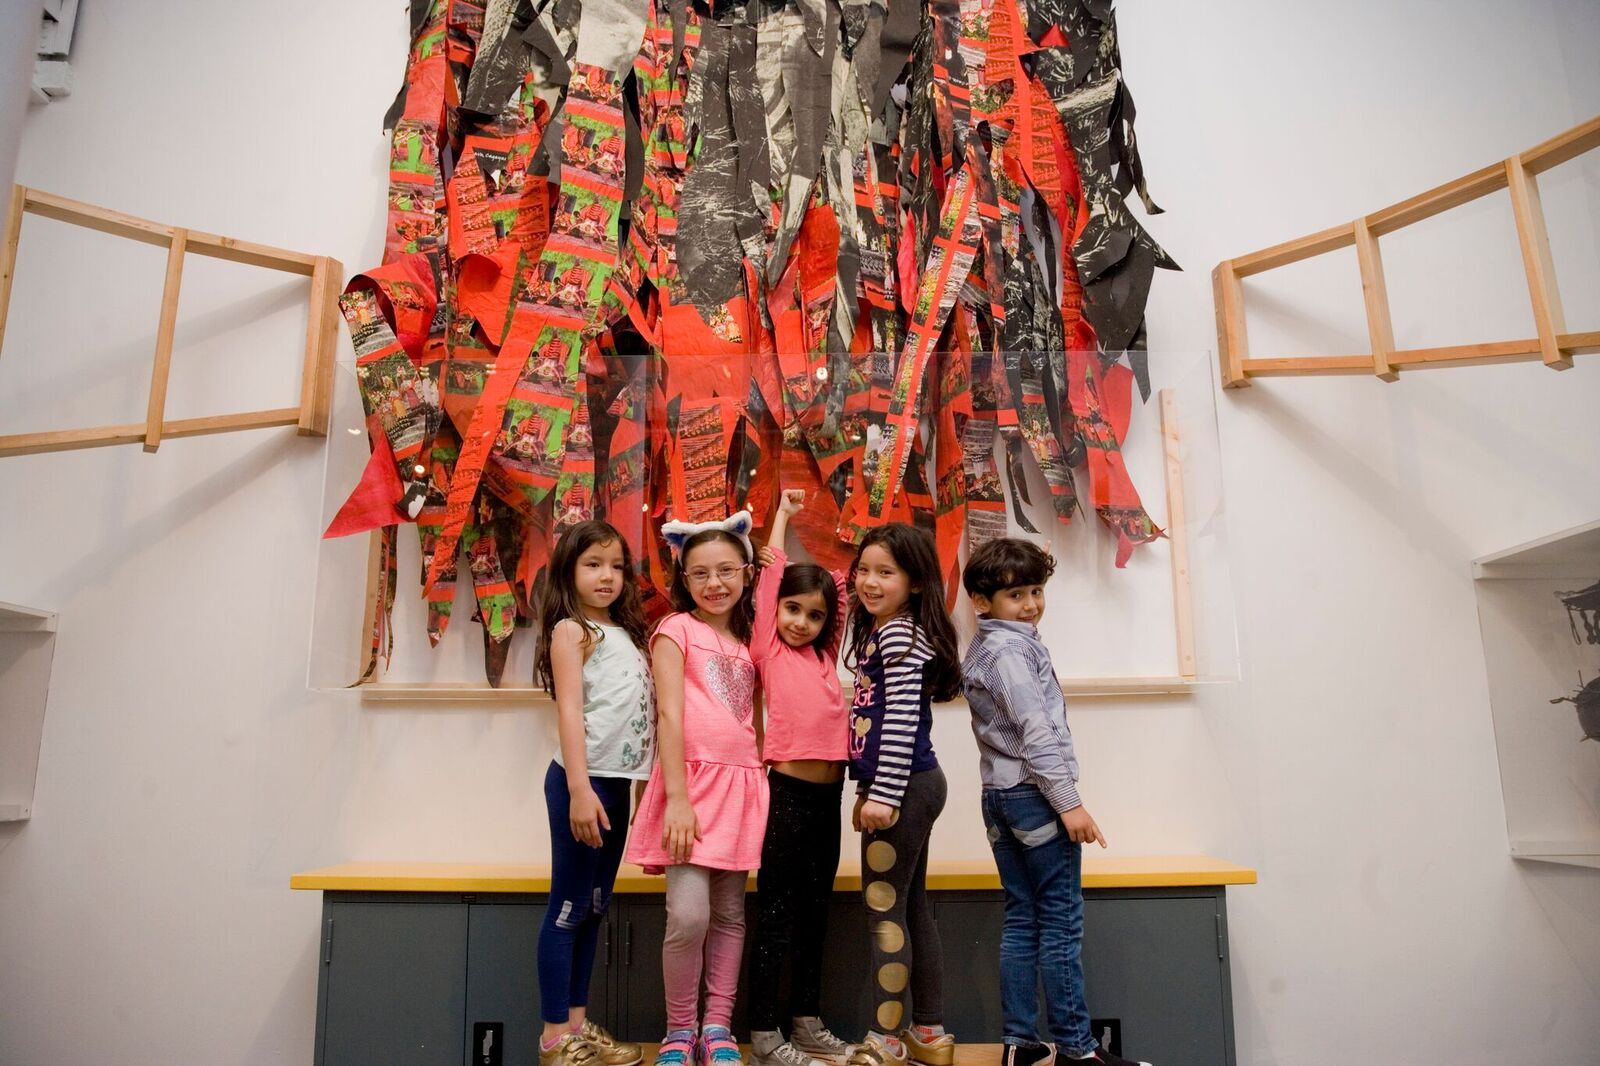 Art, Artists & You Exhibit at the Children's Museum of Manhattan